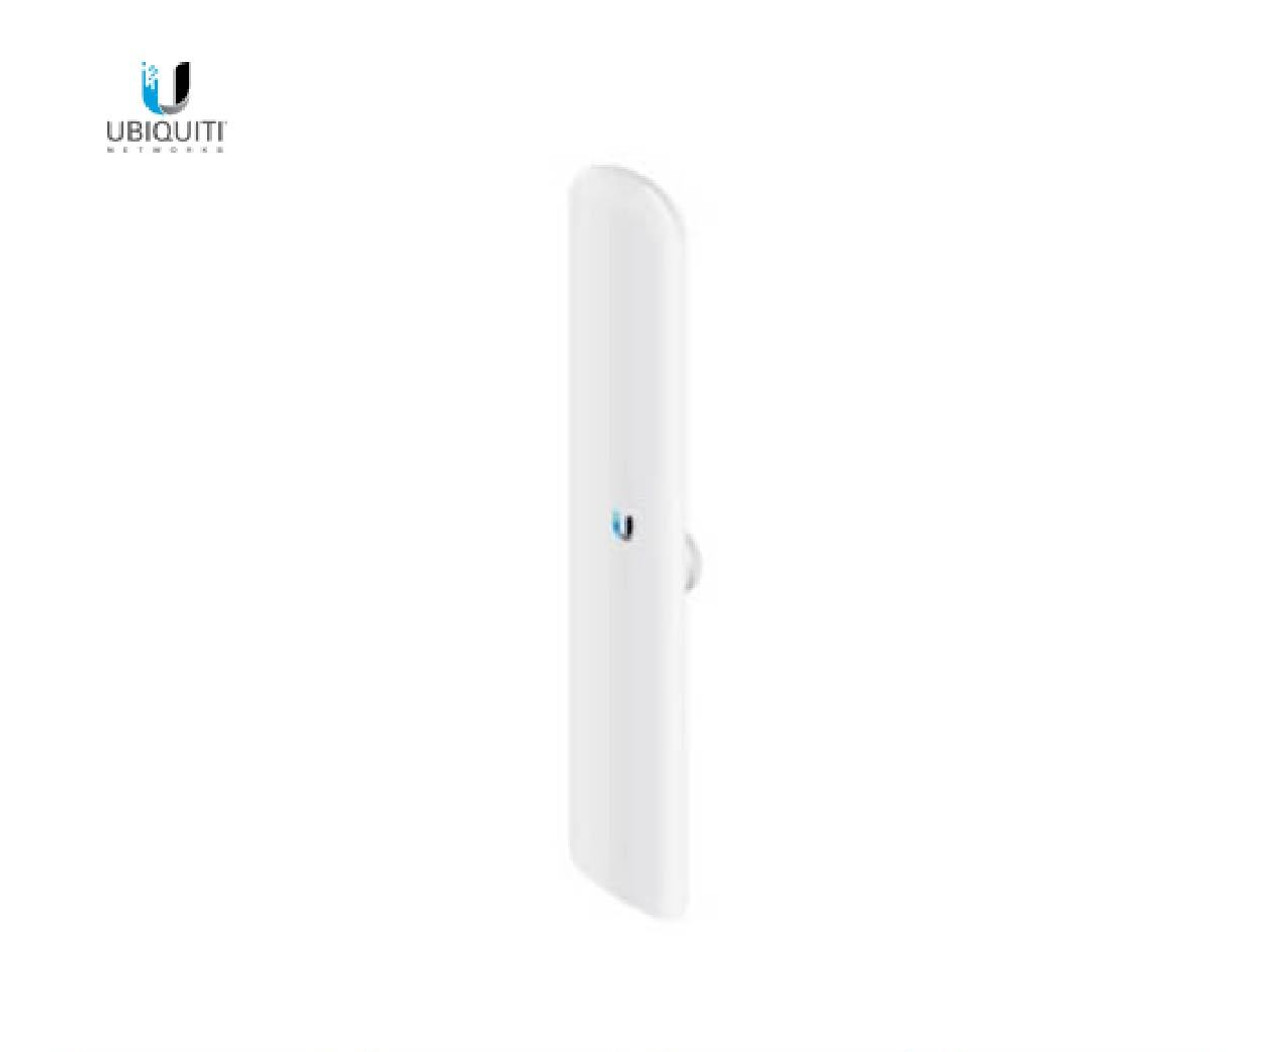 Ubiquiti LBE-5AC-16-120-US Wireless Bridge - 5 GHz frequency, up to  100Mbps, 18 miles range